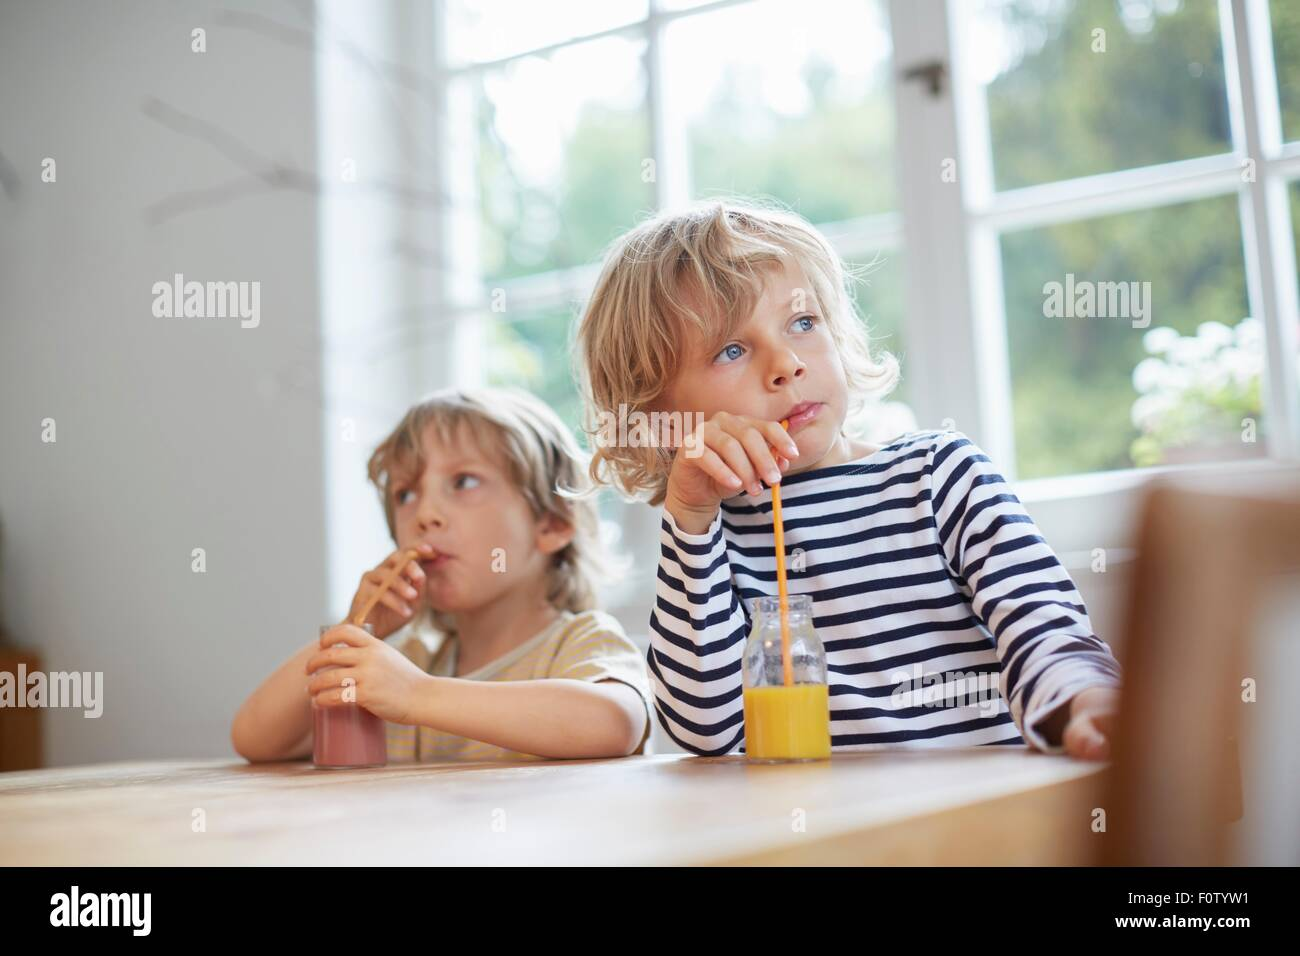 Two young brothers sitting at table drinking drinks with straws - Stock Image